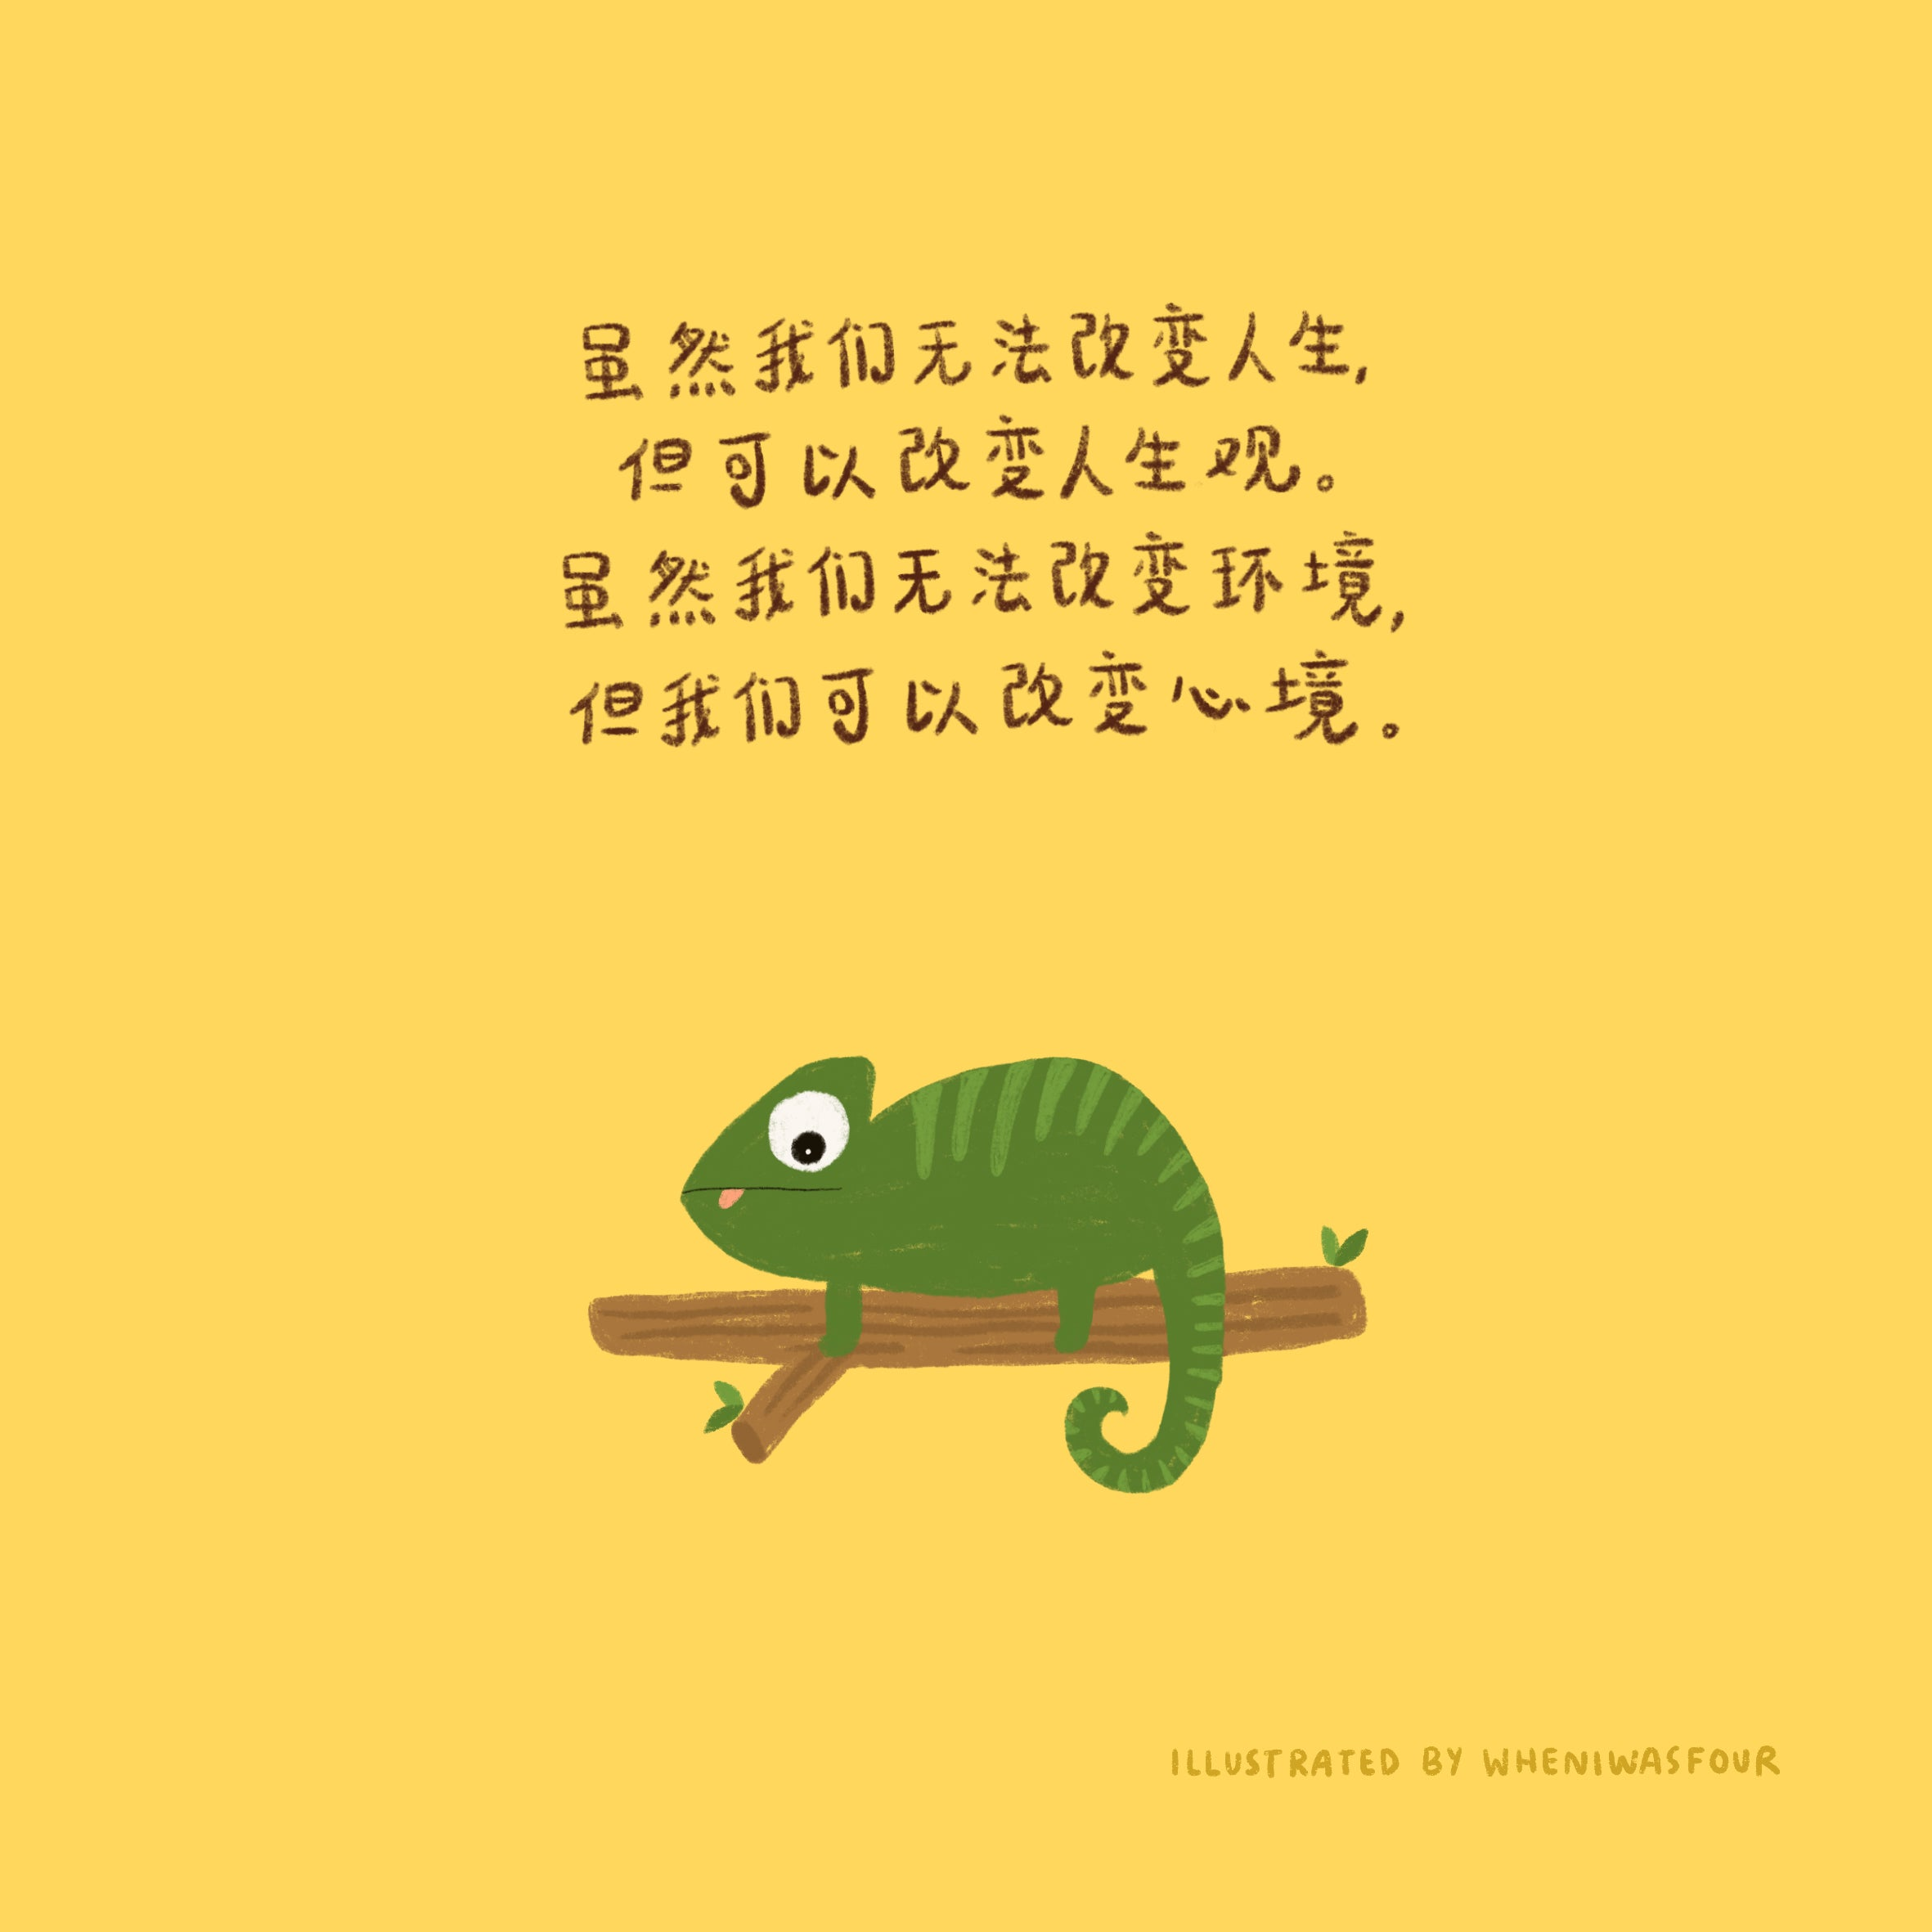 digital illustration of a chameleon on a tree branch with a chinese quote about needing to change mindset and perspective